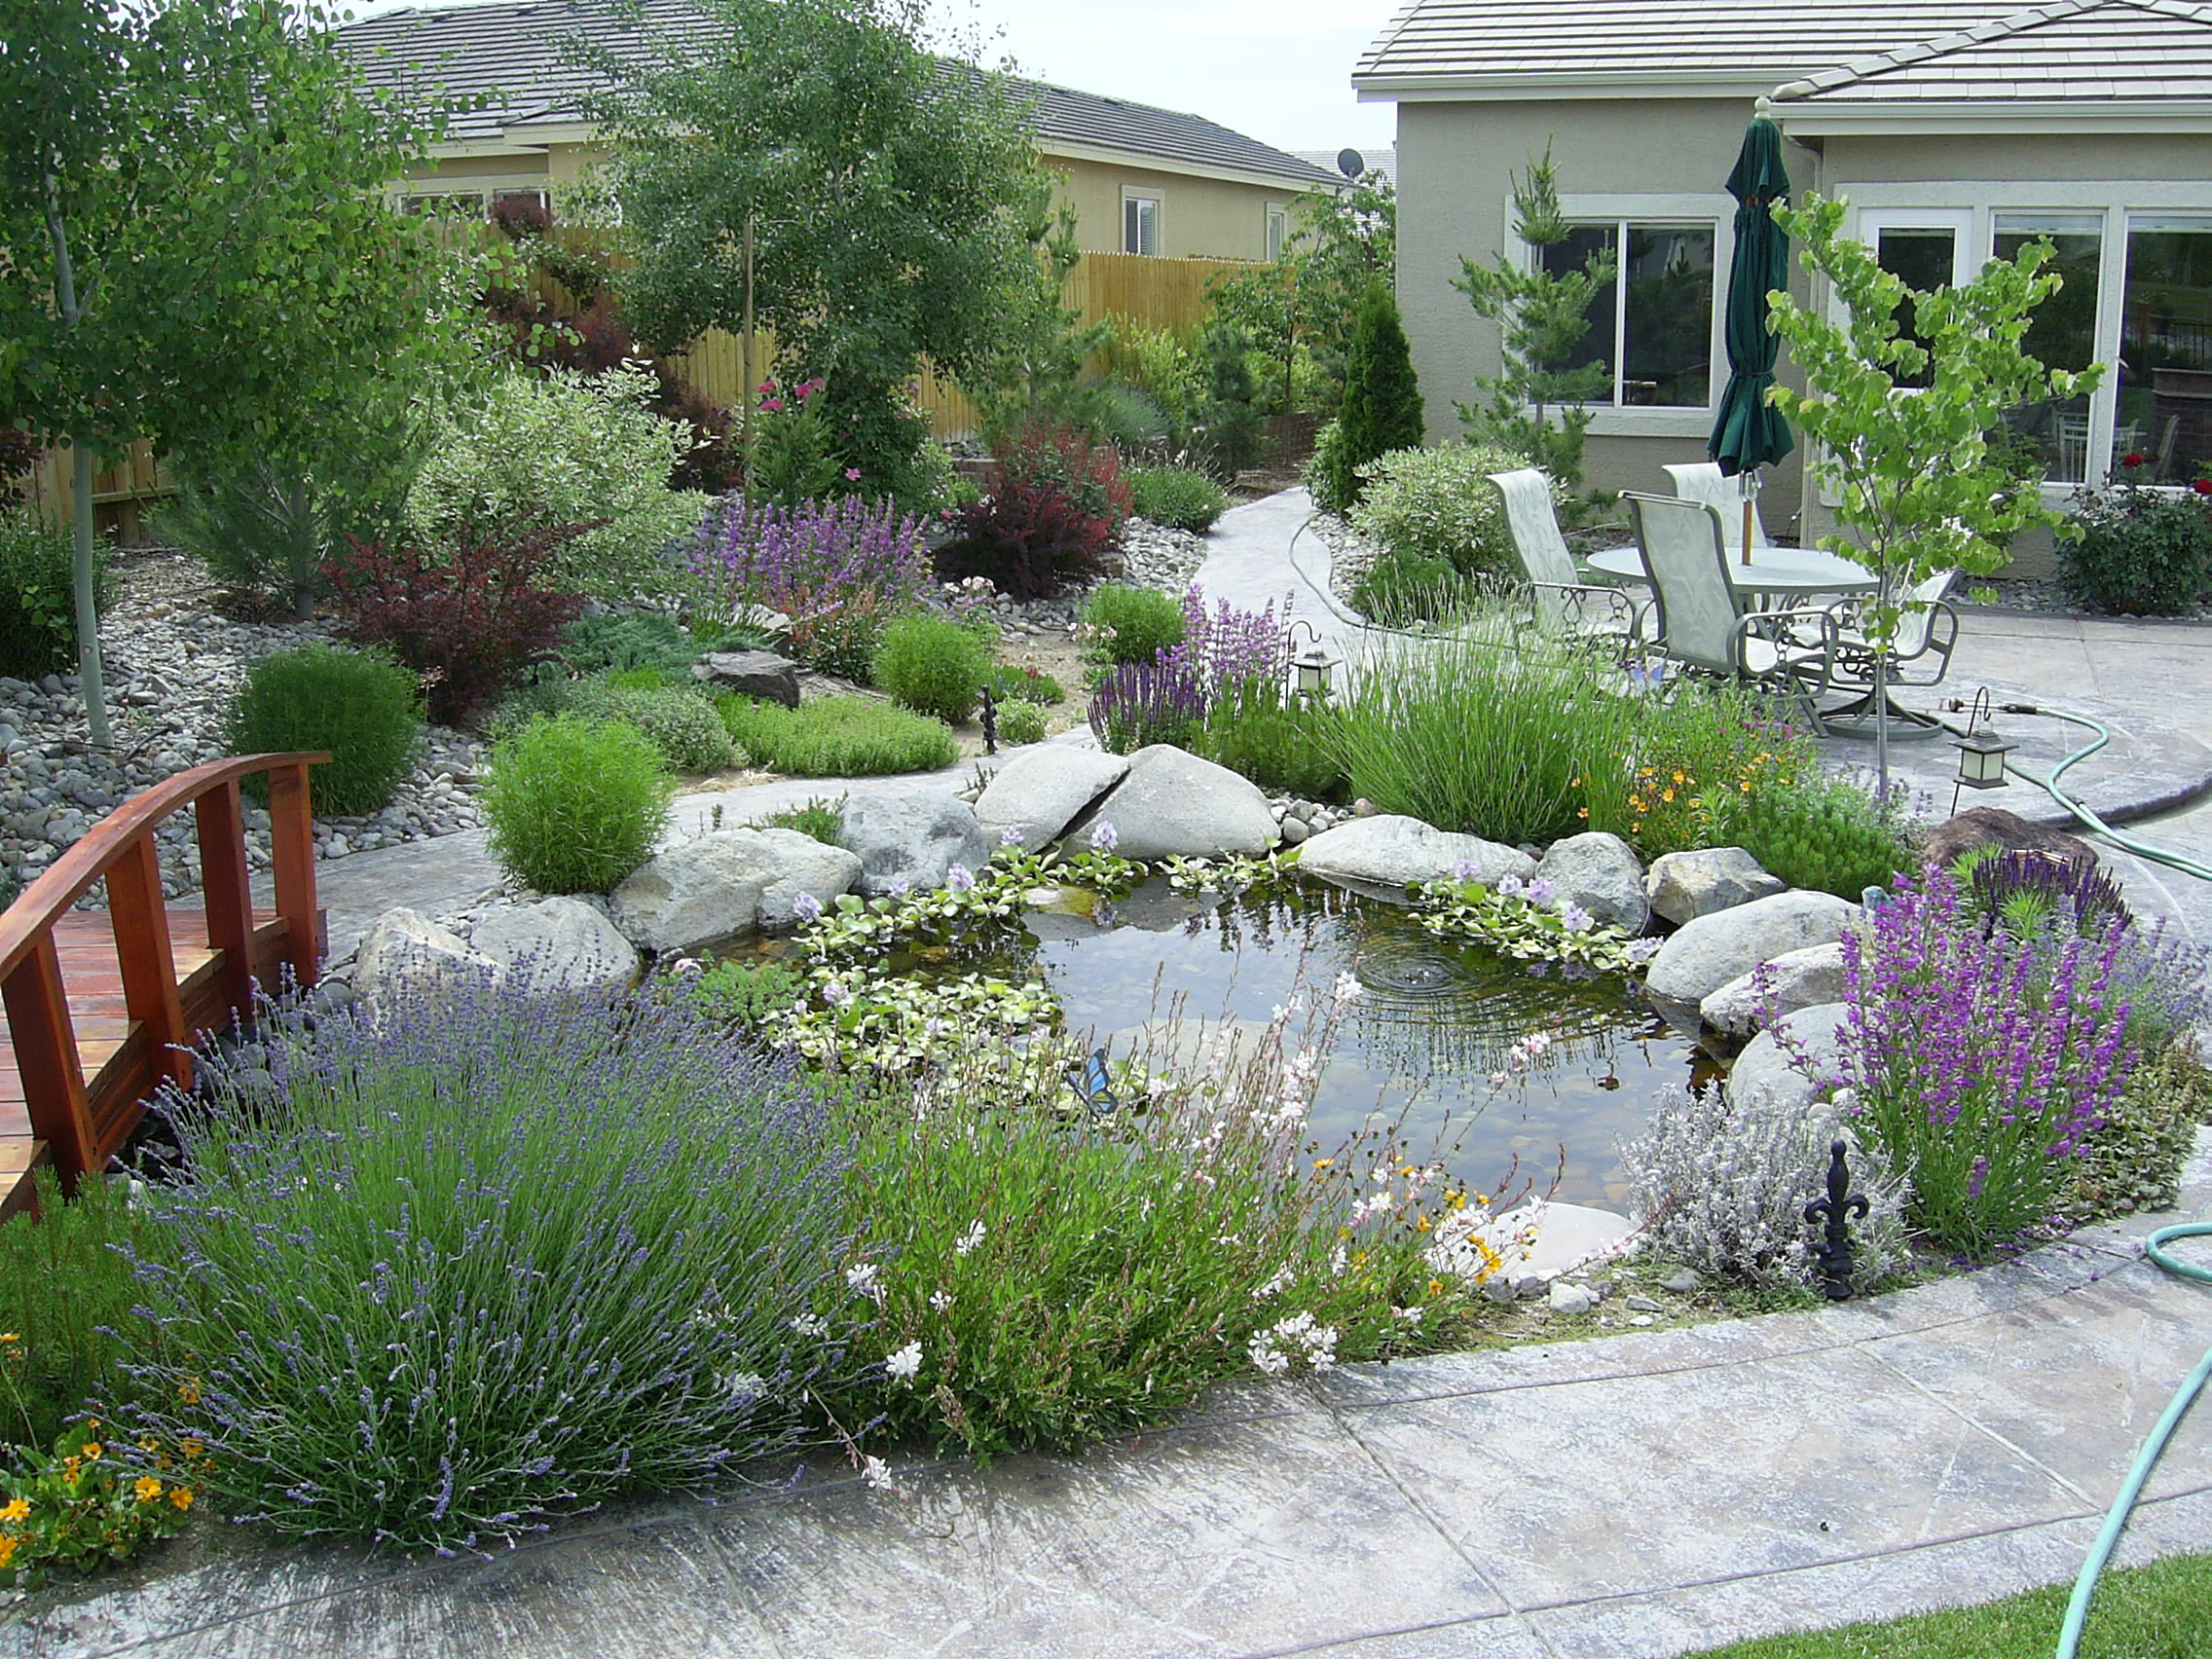 Landscape and garden design implications of water for Landscape design